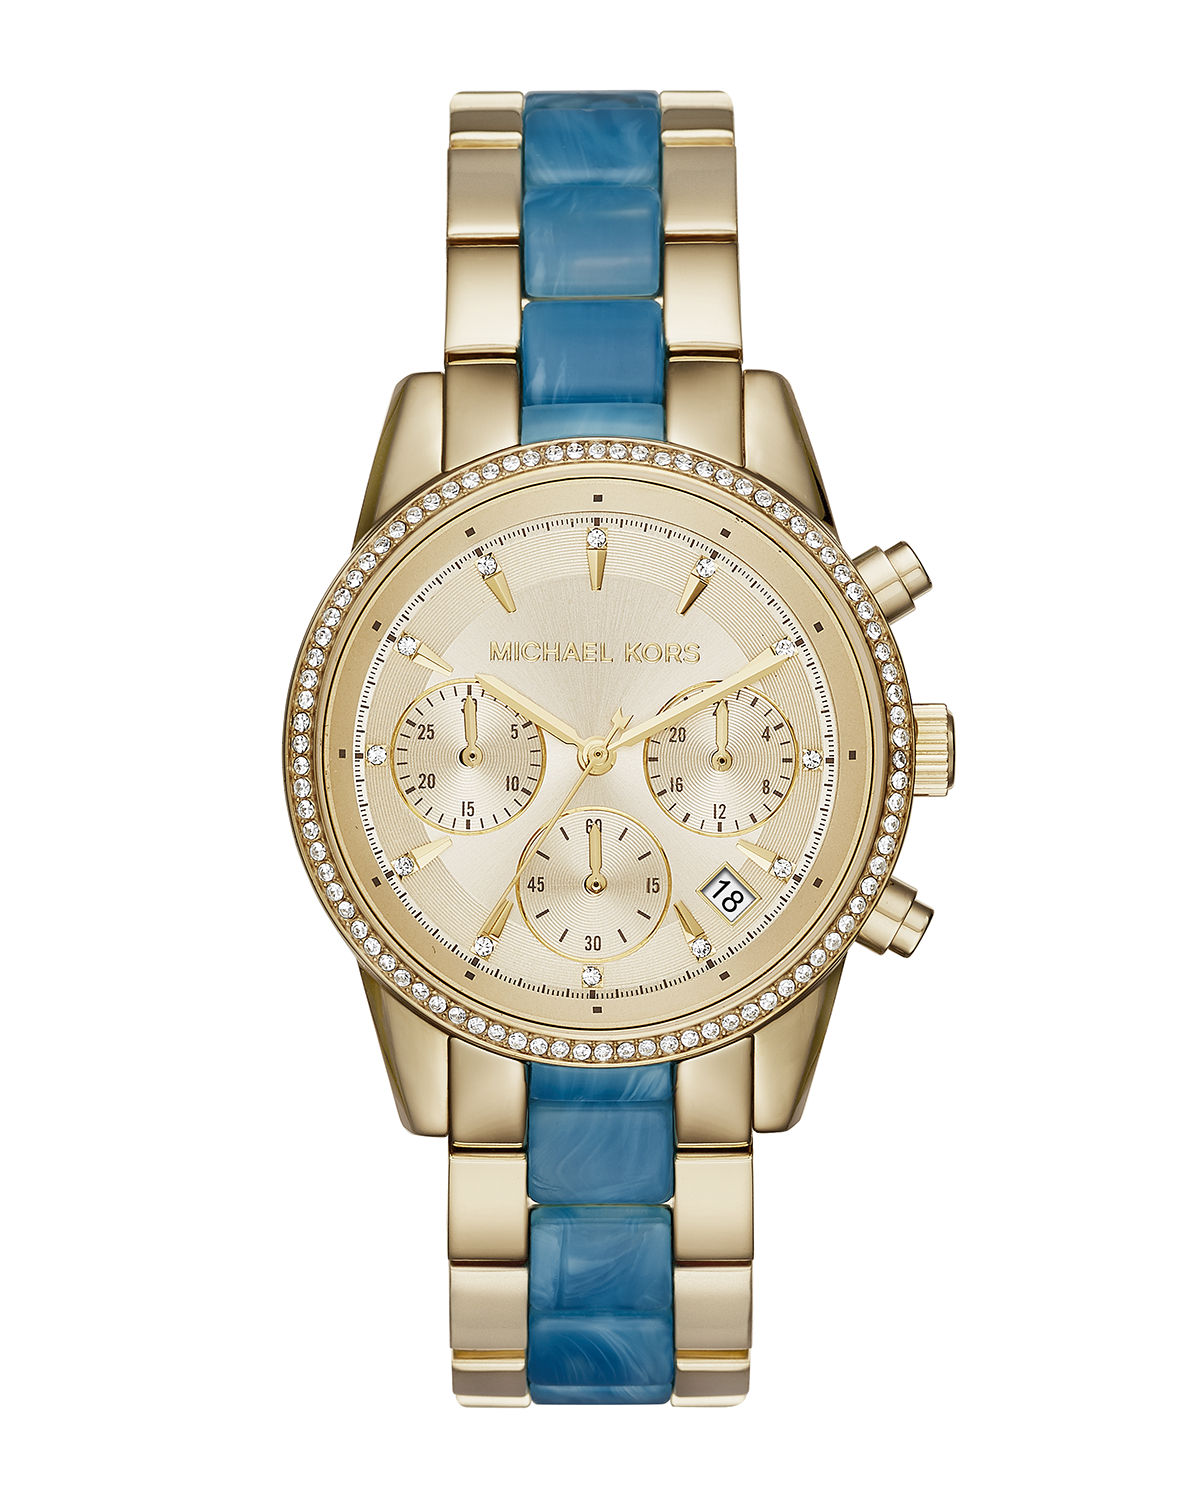 37mm Ritz Bracelet Strap Chronograph Watch